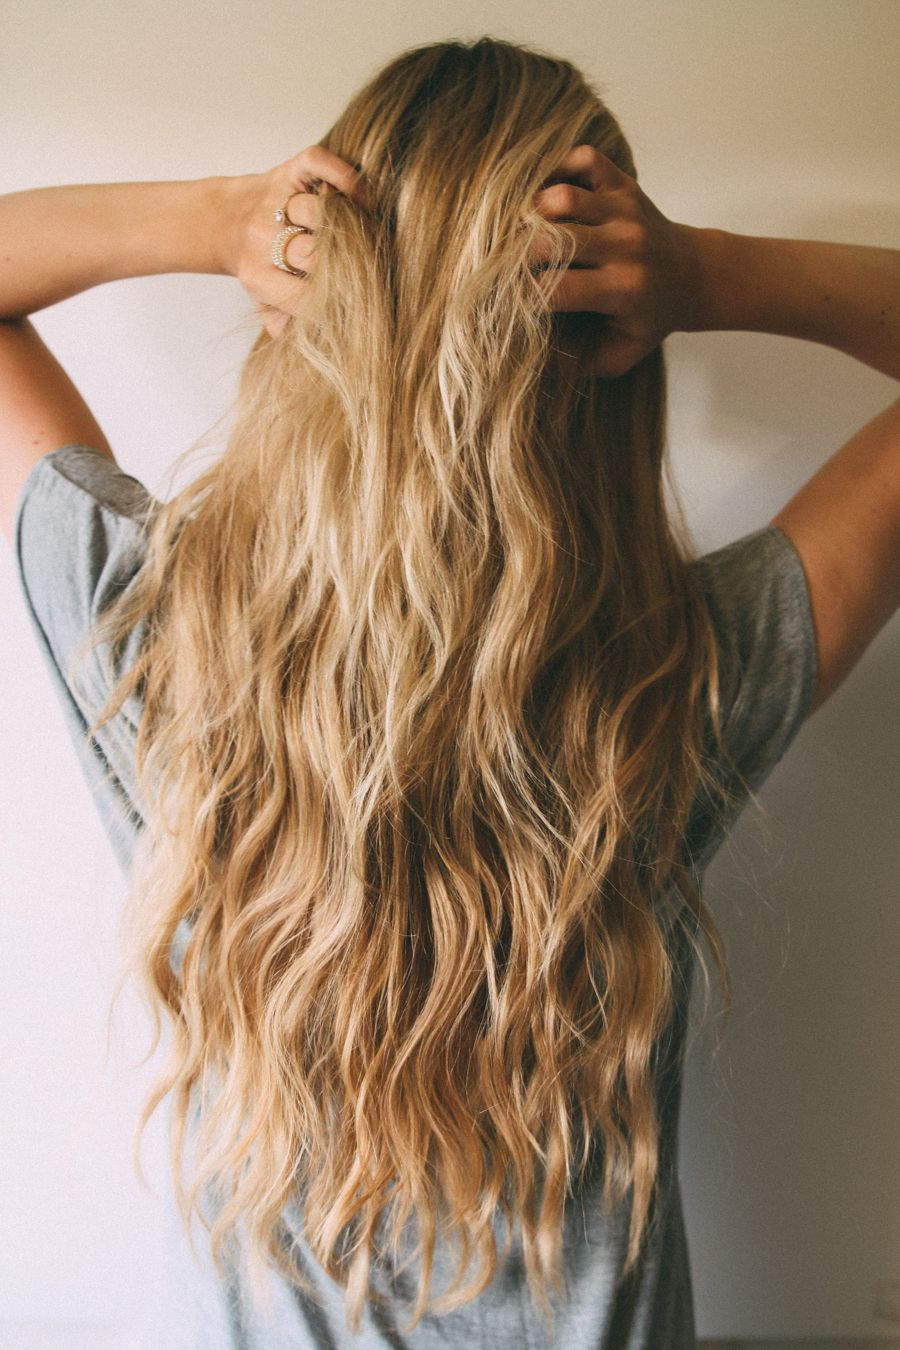 Pin by MamaPlay on My Style Long hair styles, Hair